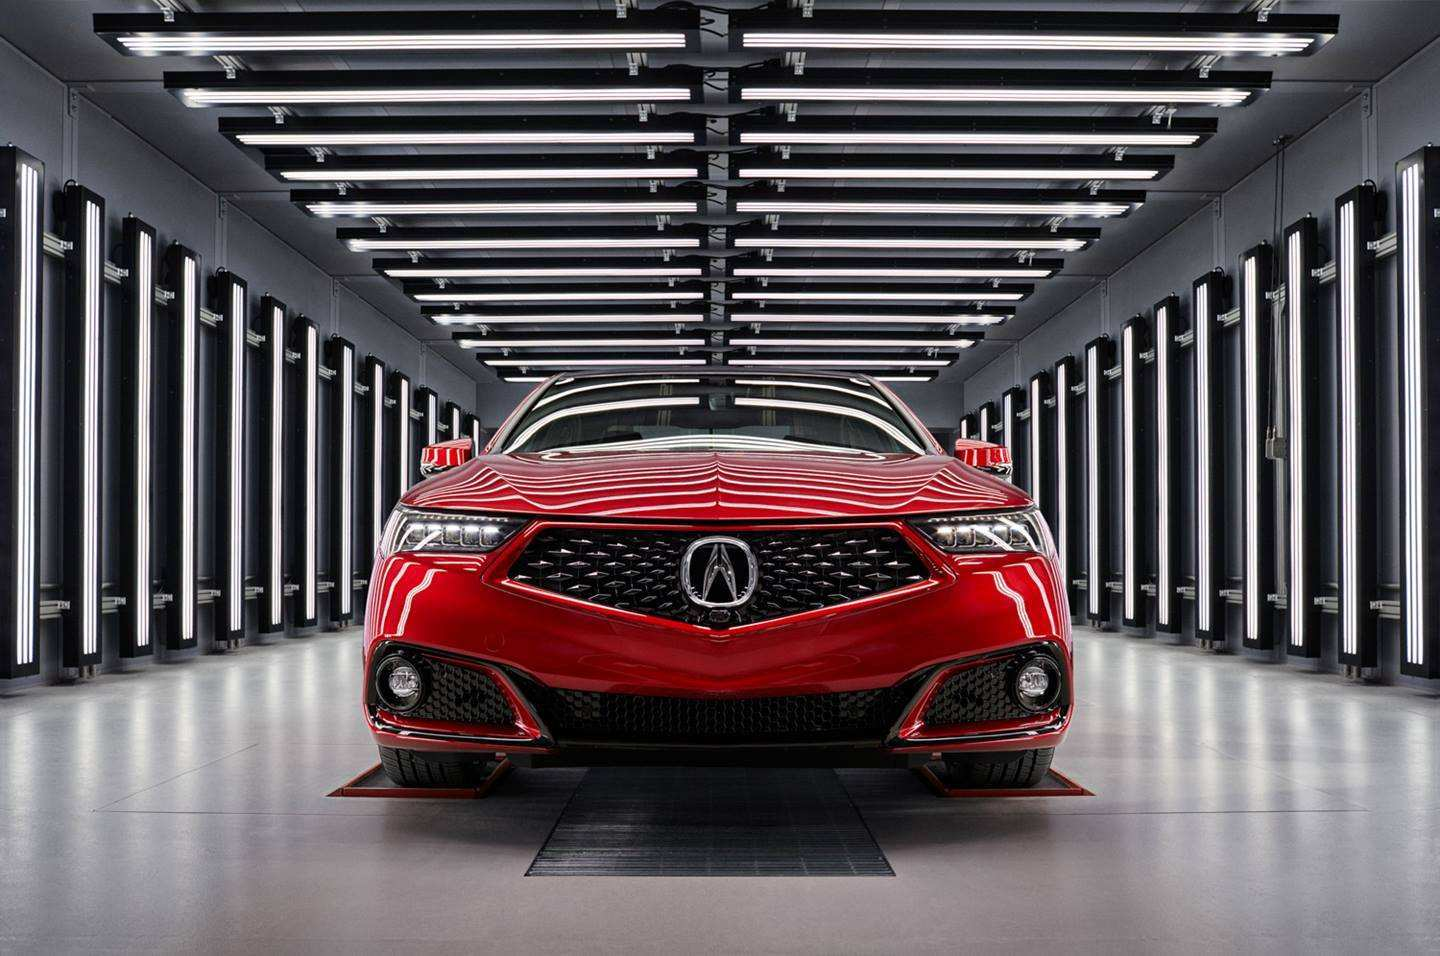 29 Best Review 2020 Acura Tlx Pmc Edition Specs Redesign and Concept with 2020 Acura Tlx Pmc Edition Specs